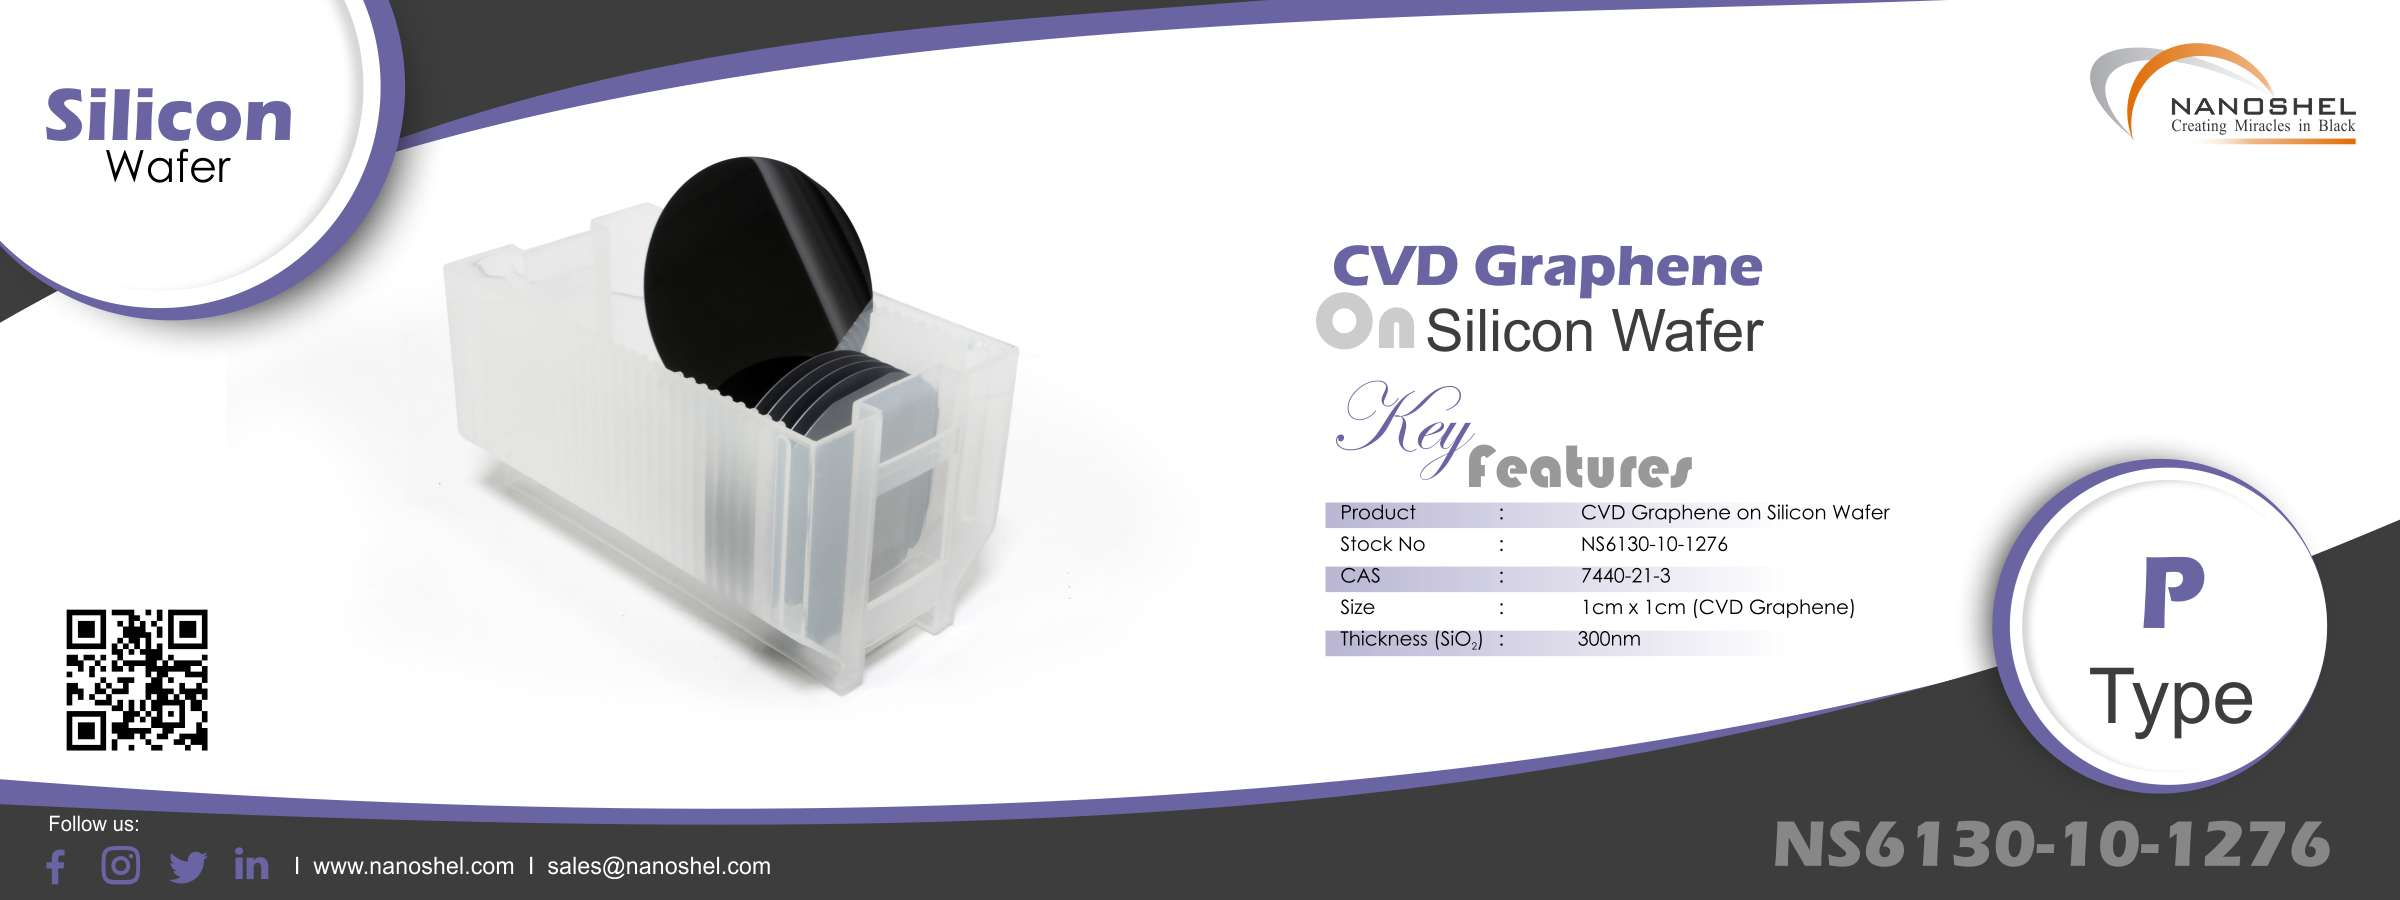 CVD Graphene on Silicon Wafer